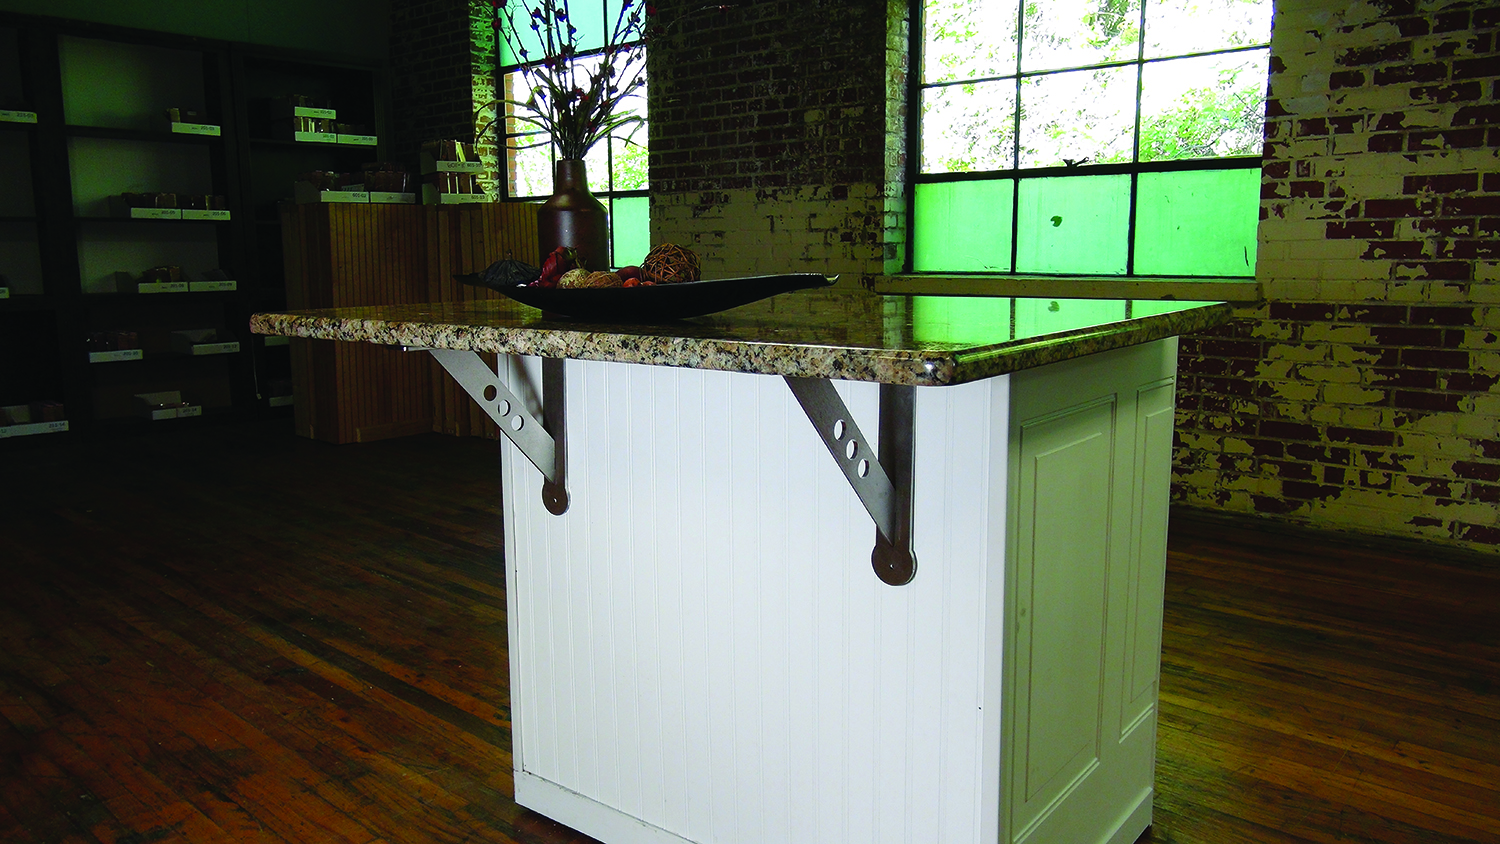 Orion Countertop Brackets